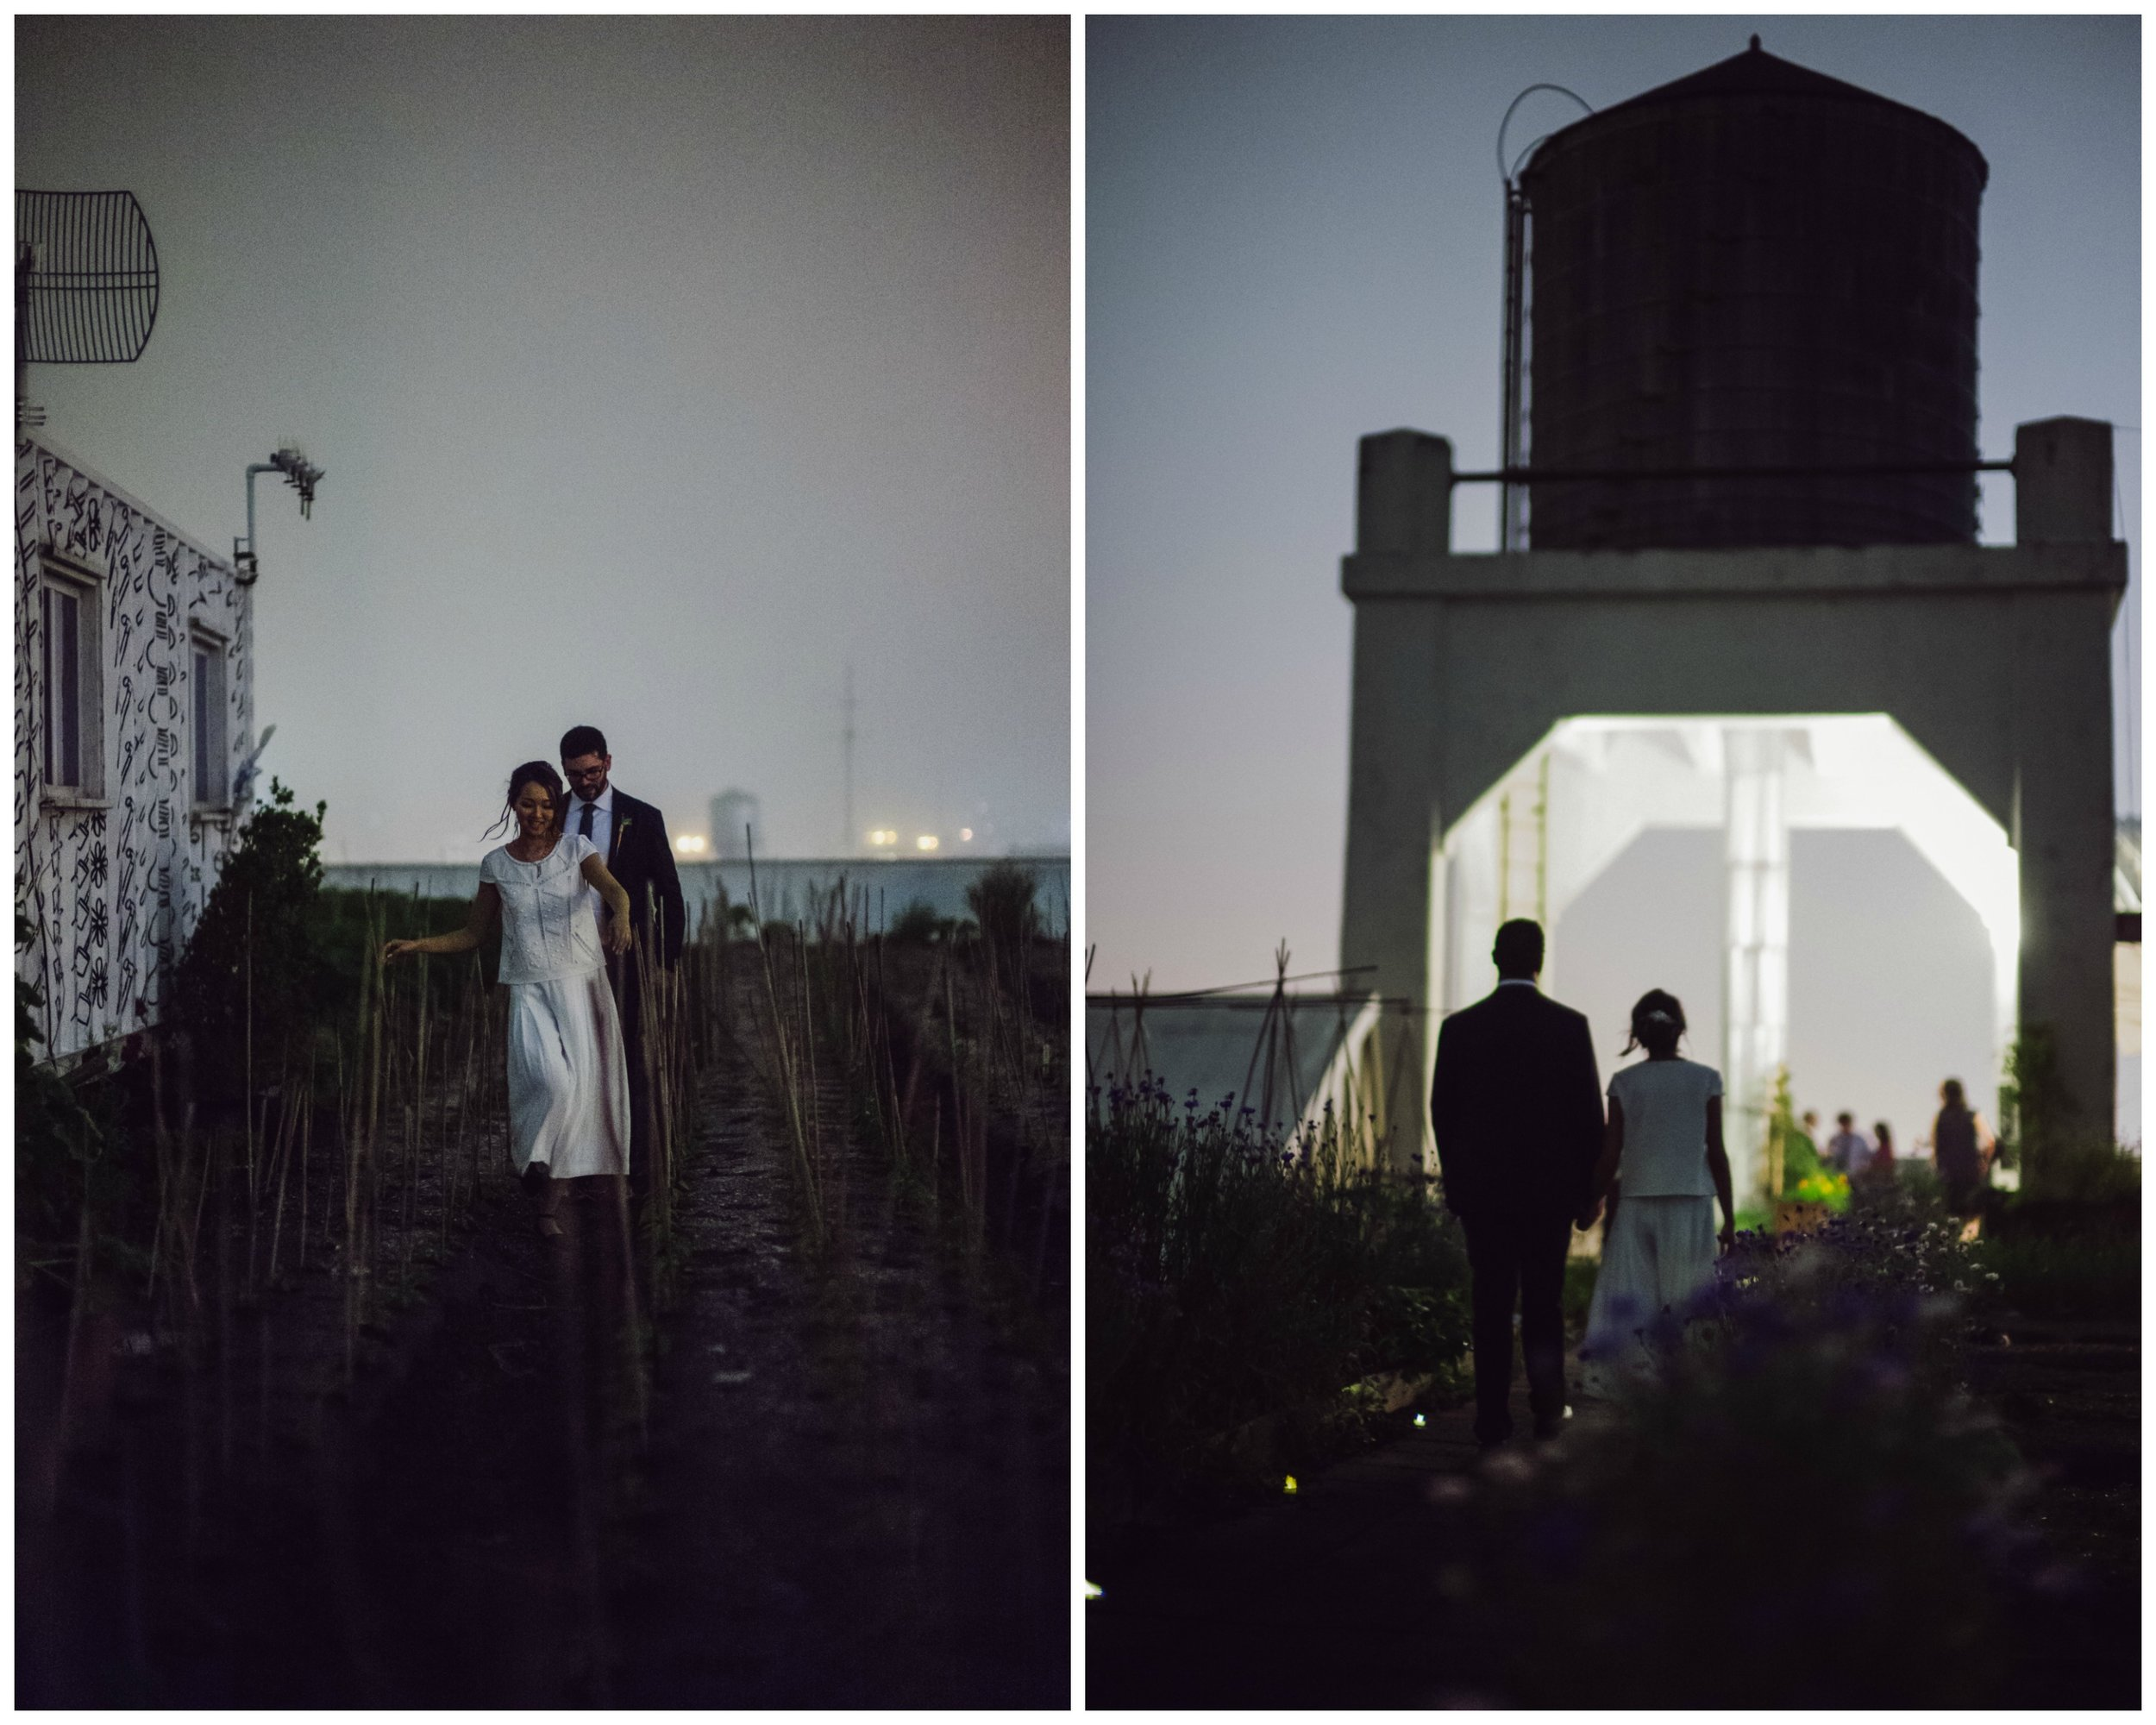 BROOKLYN GRANGE WEDDING - NYC BEST INTIMATE WEDDING PHOTOGRAPHER - CHI-CHI ARI 14.jpg